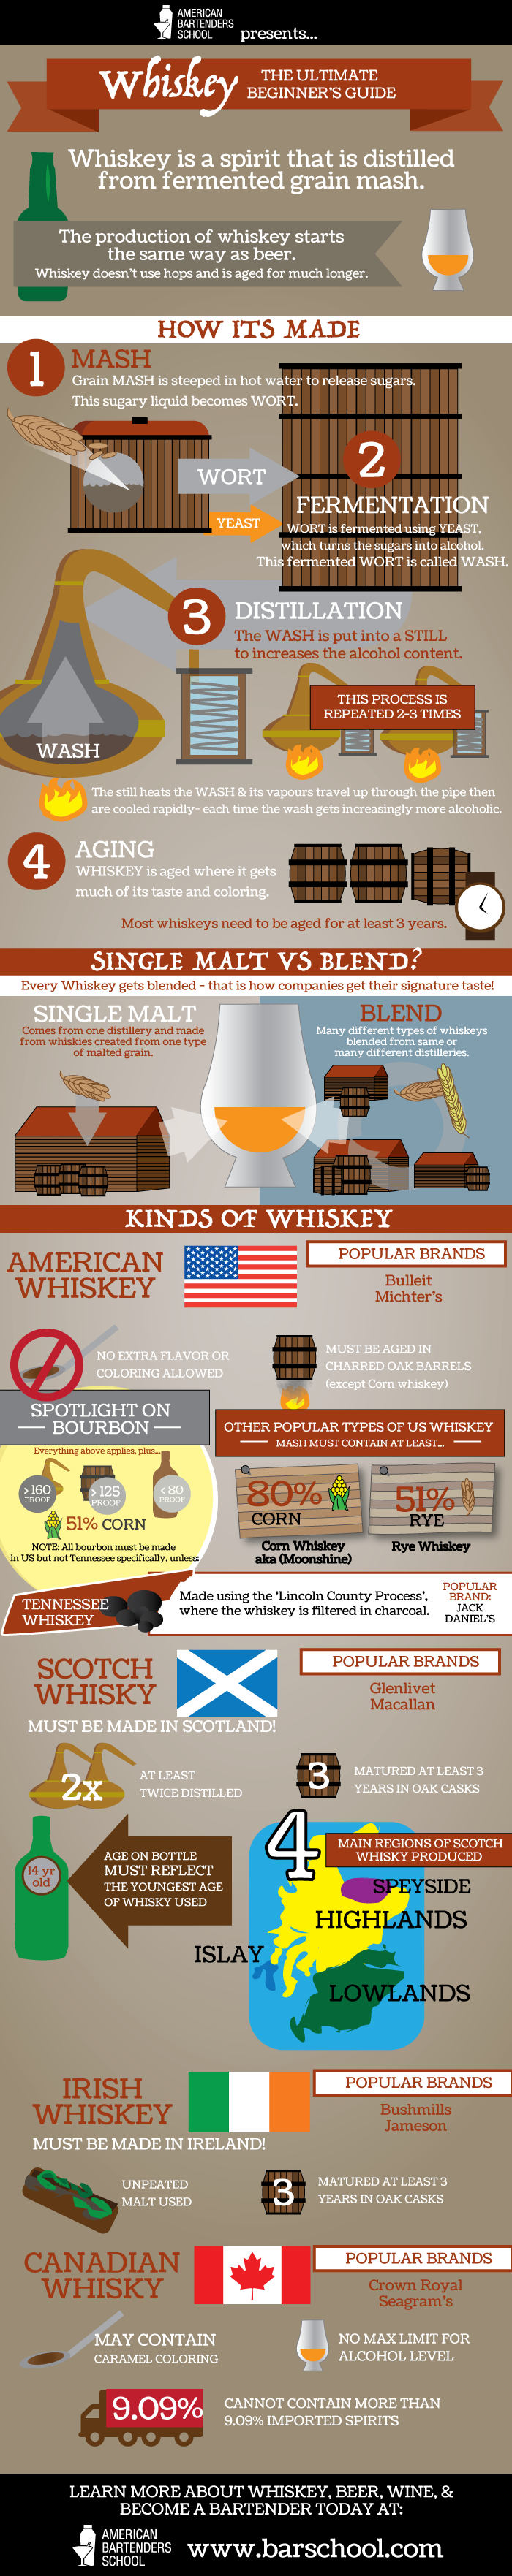 whiskey-guide